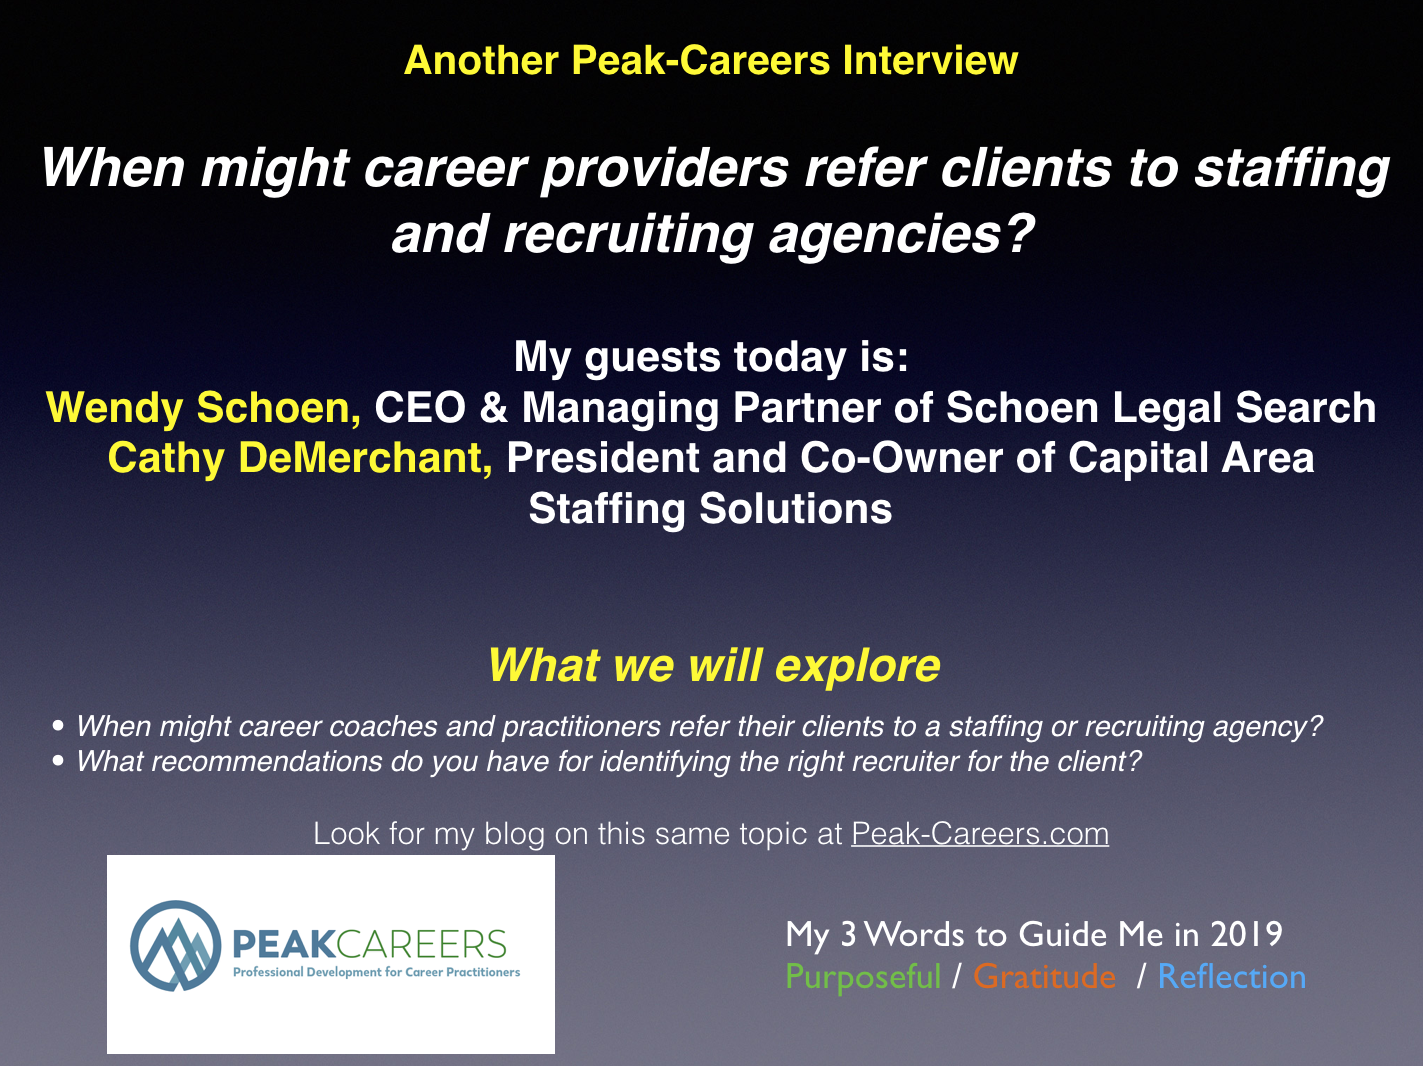 INTERVIEW: Staffing & Recruiting Agencies